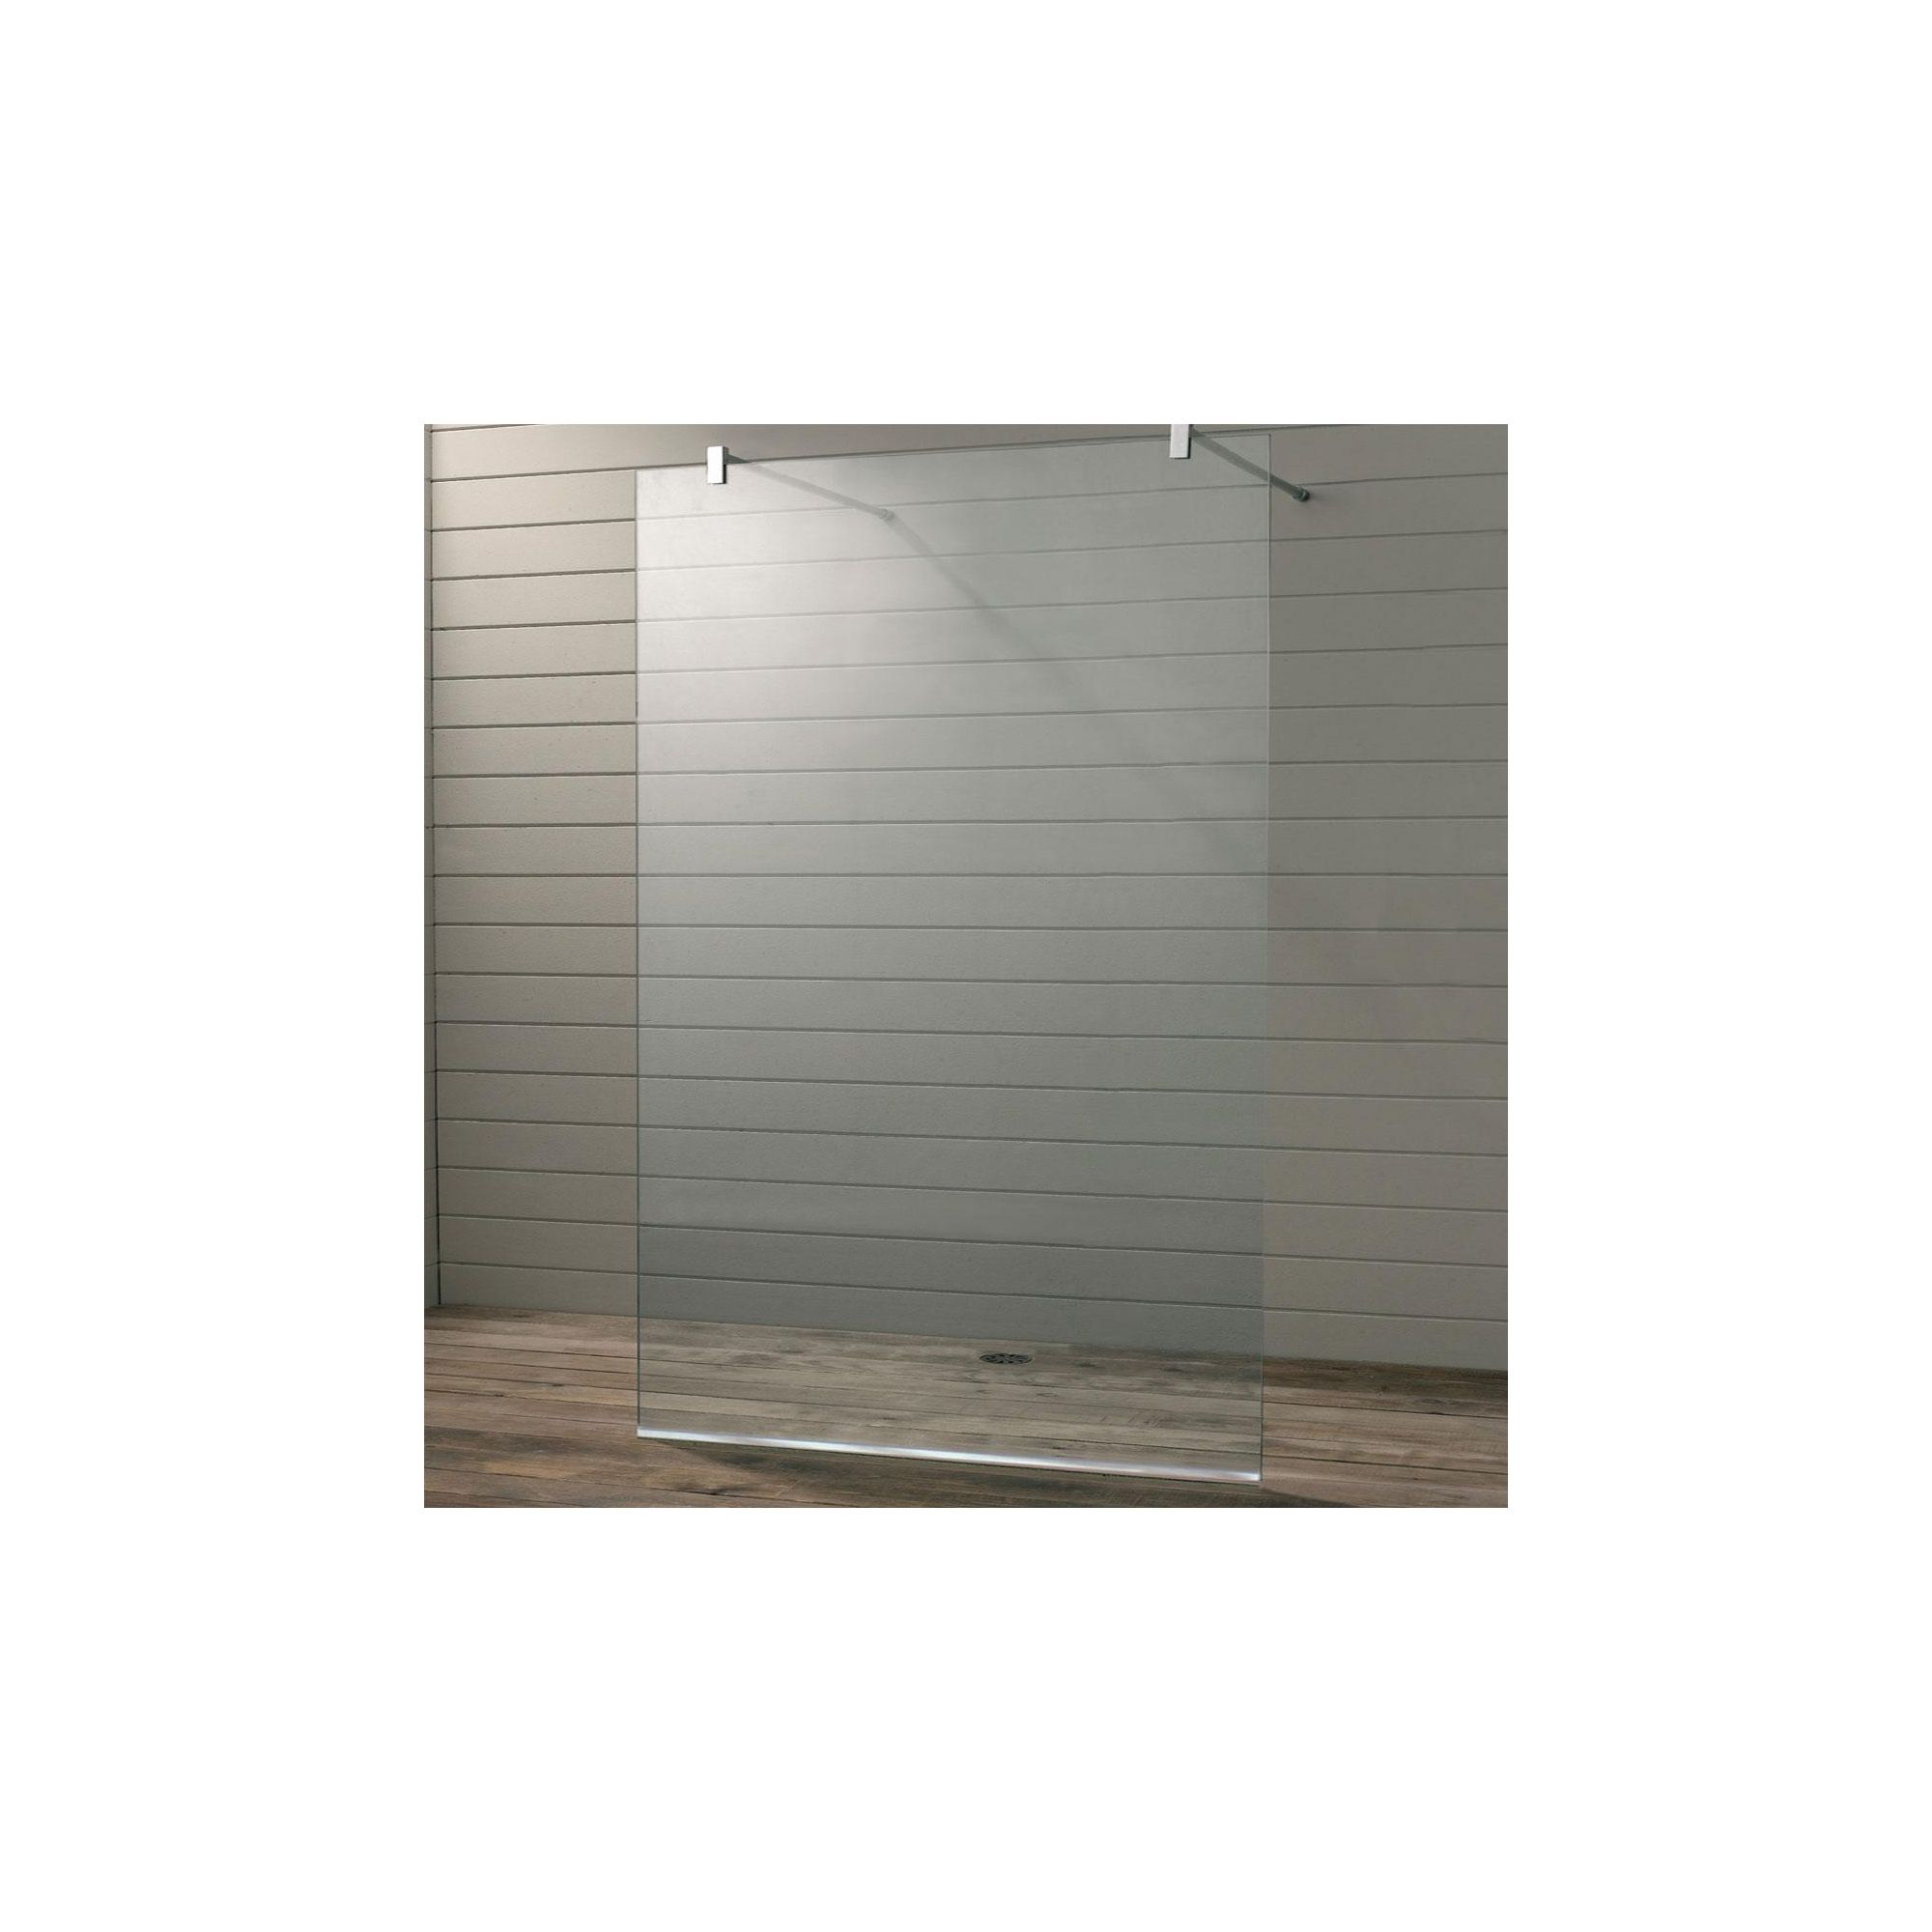 Duchy Premium Wet Room Glass Shower Panel, 1000mm Wide, 10mm Glass at Tesco Direct